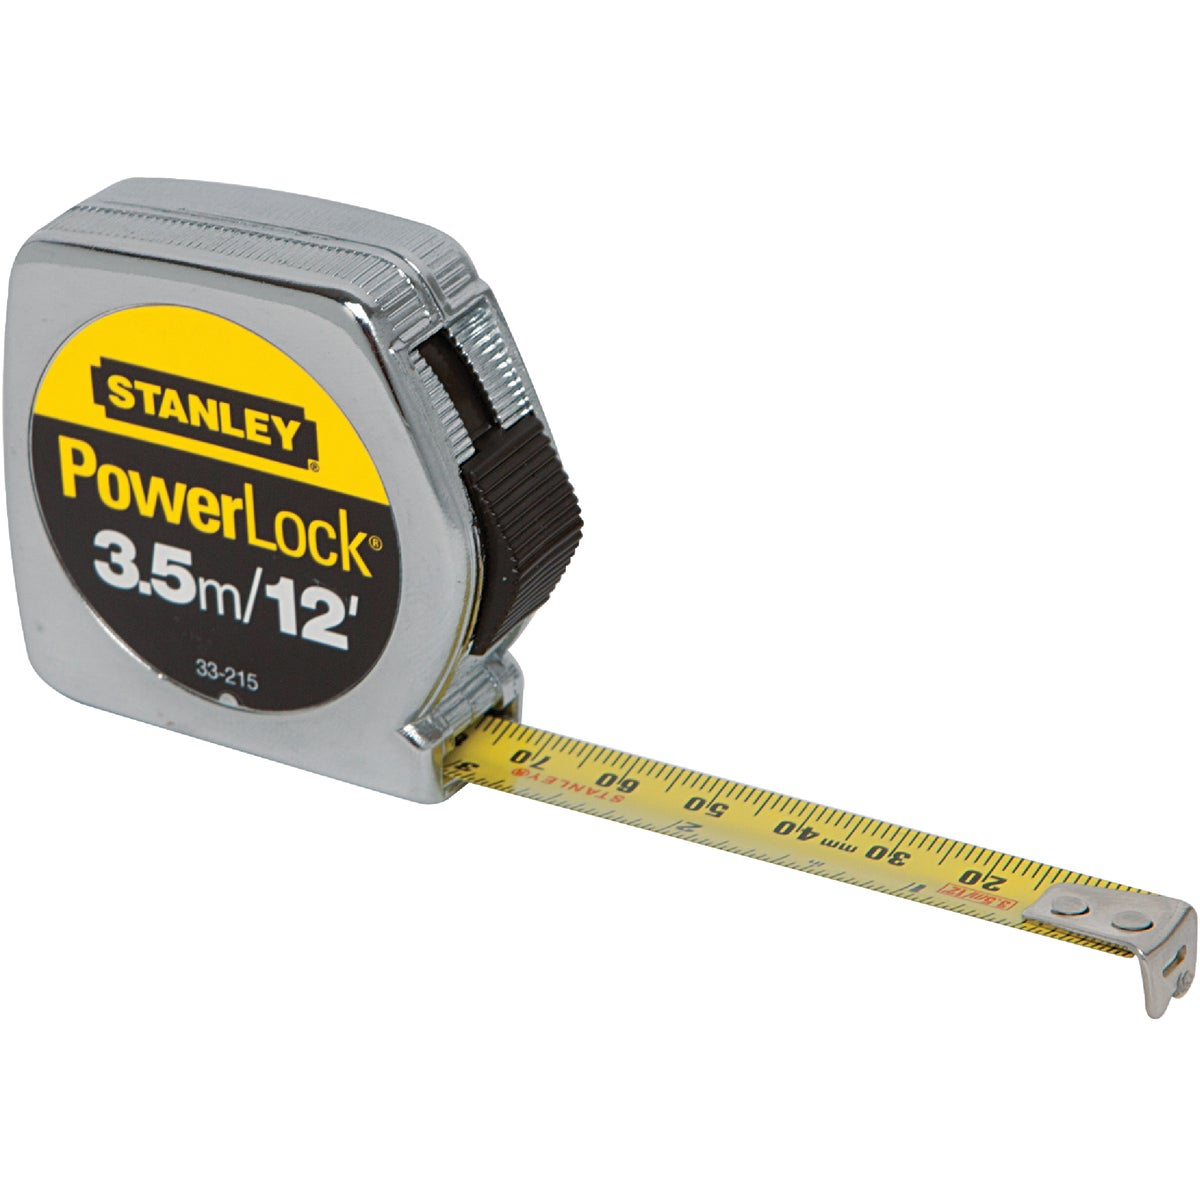 "1/2""X3.5M MTRC TAPE RULE - 33-215 by Stanley Tools"